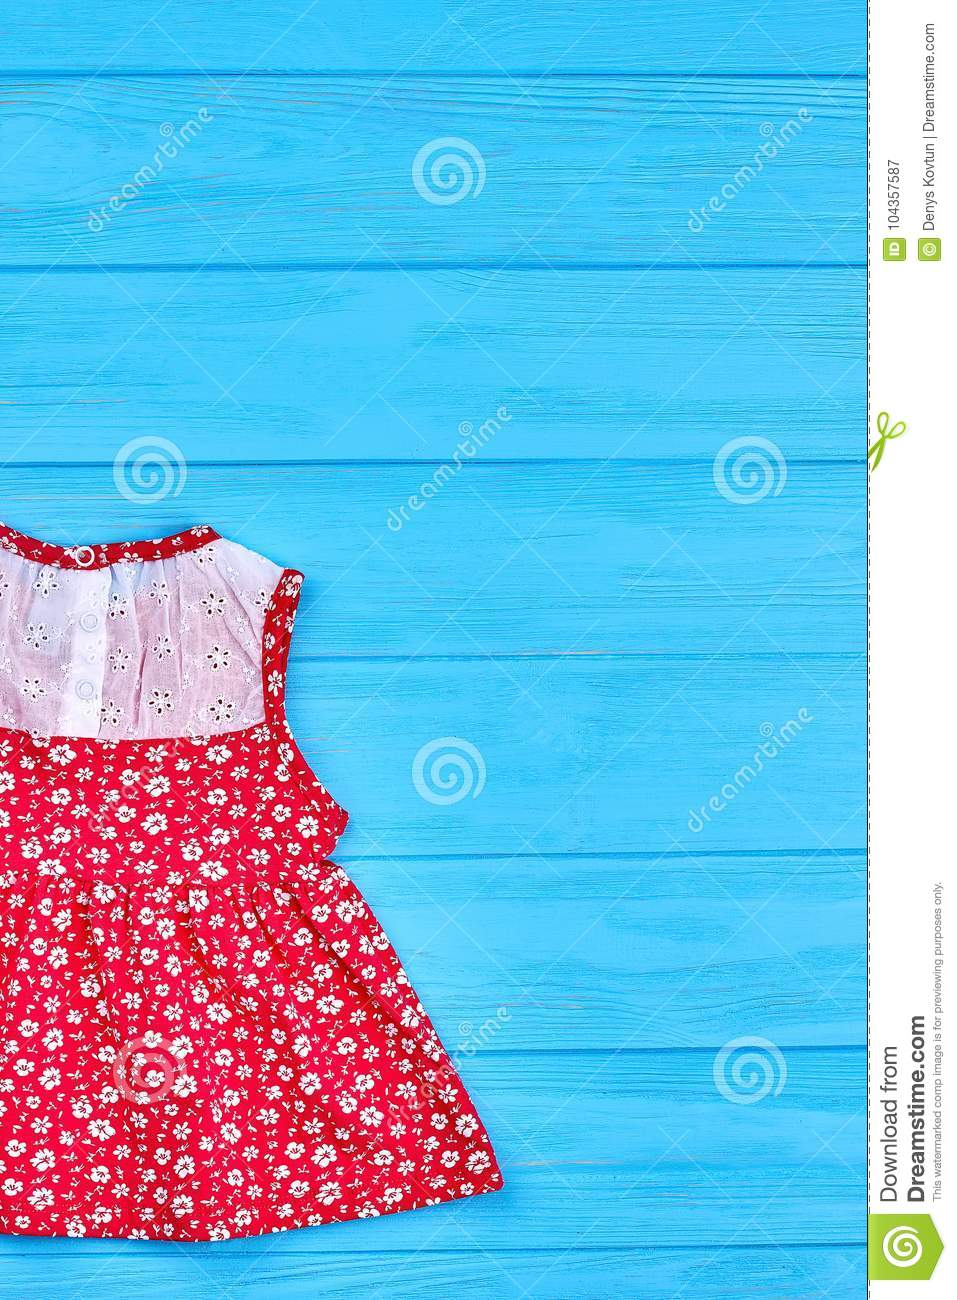 407c40156be Baby Red Dress With A Pattern Of Flowers. Stock Image - Image of ...